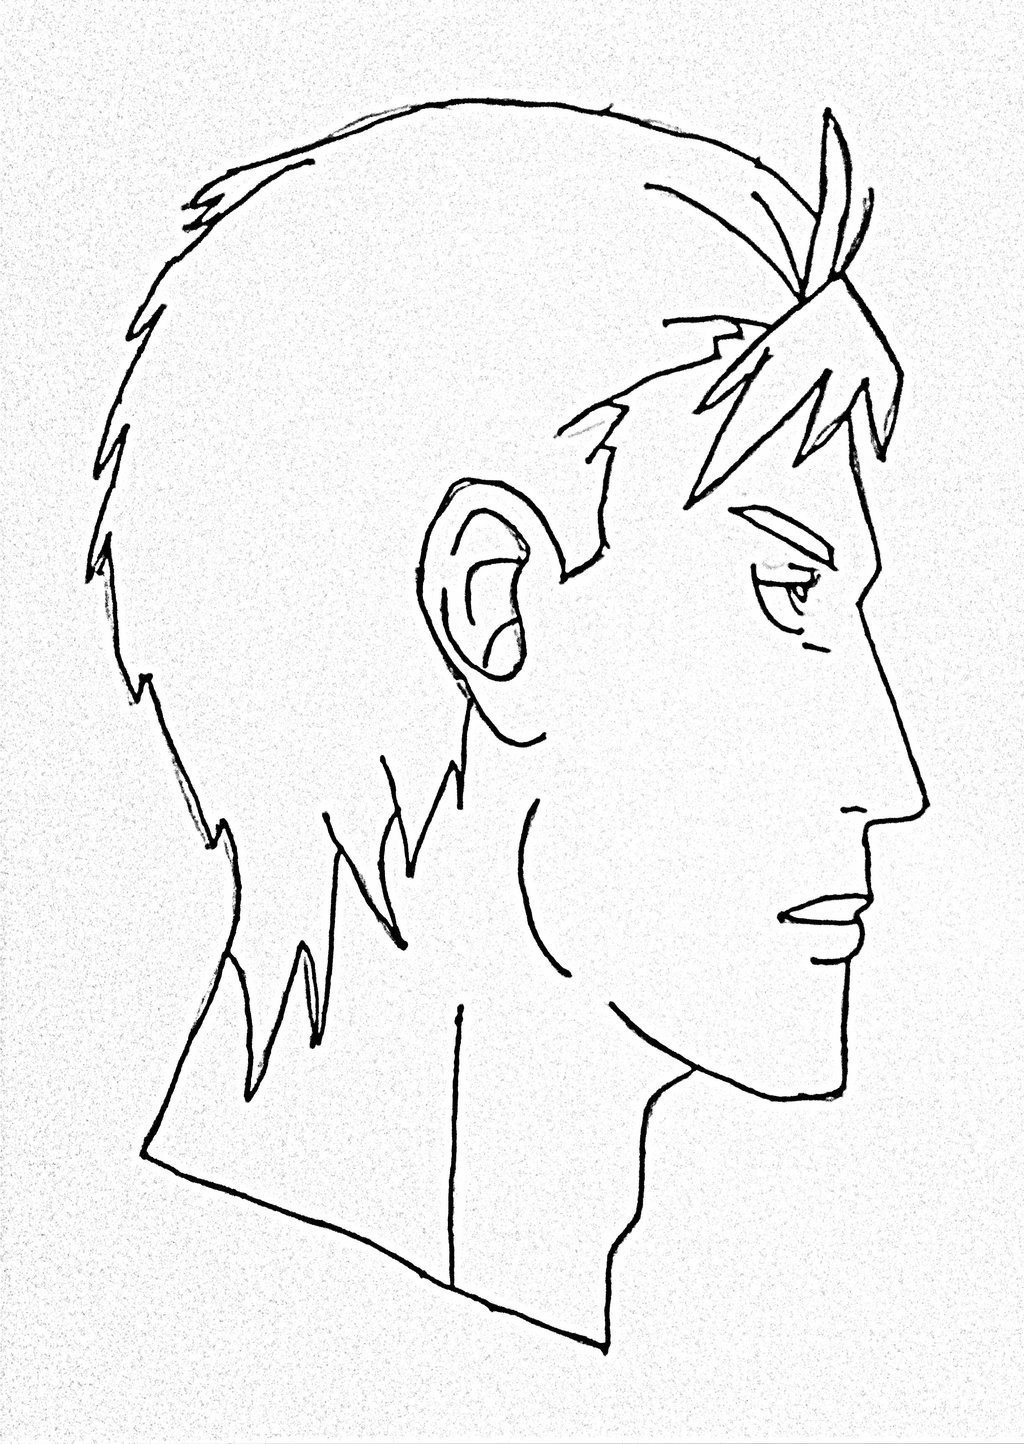 1024x1444 Drawing Male Anime 3. How To Draw A Male In Profile View